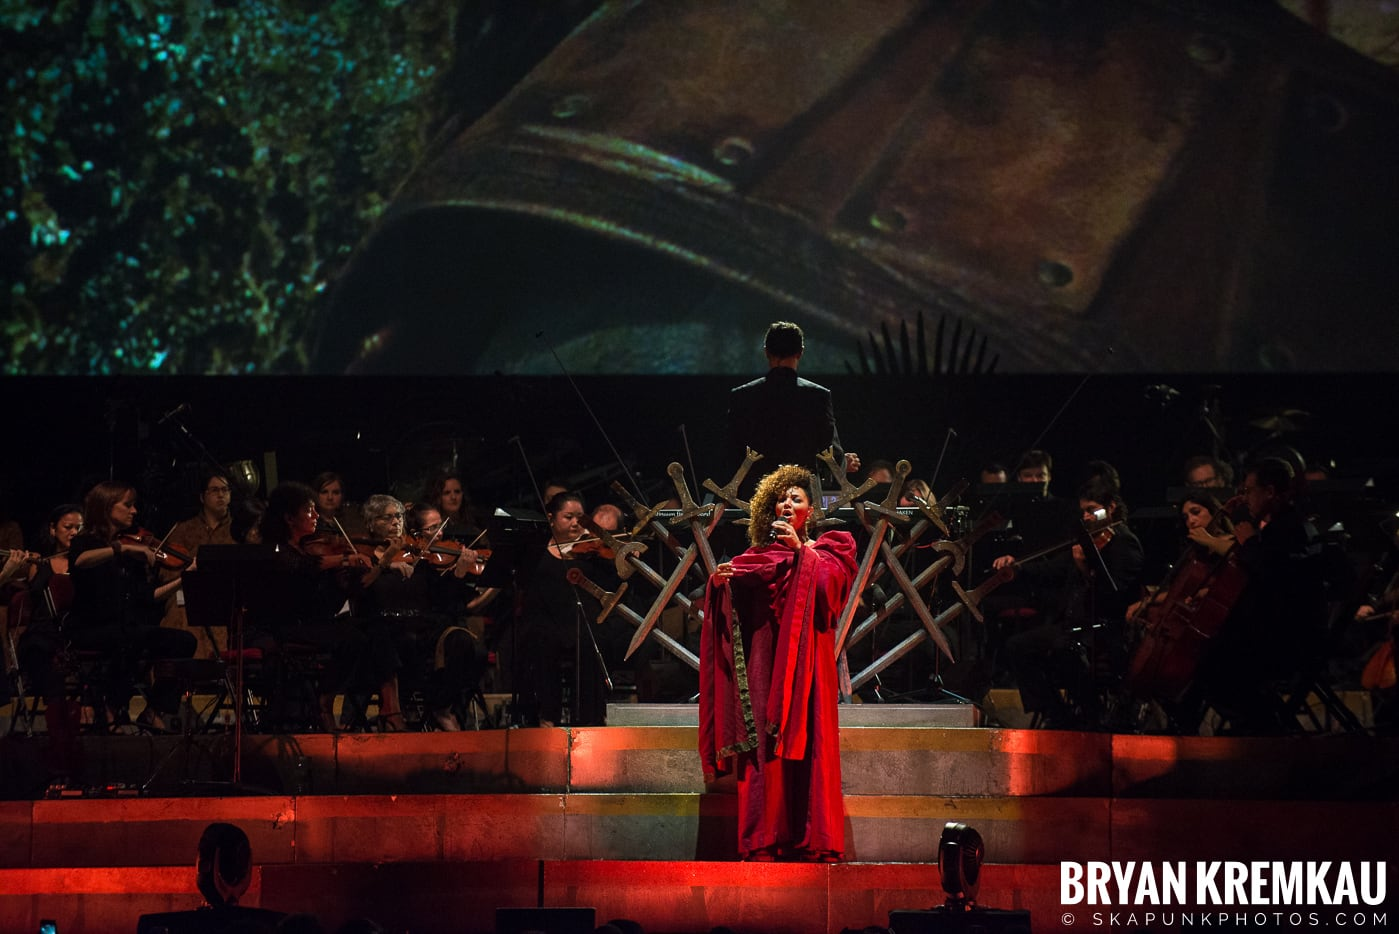 Game of Thrones Live Experience @ Prudential Center, Newark, NJ - 9.26.18 (4)